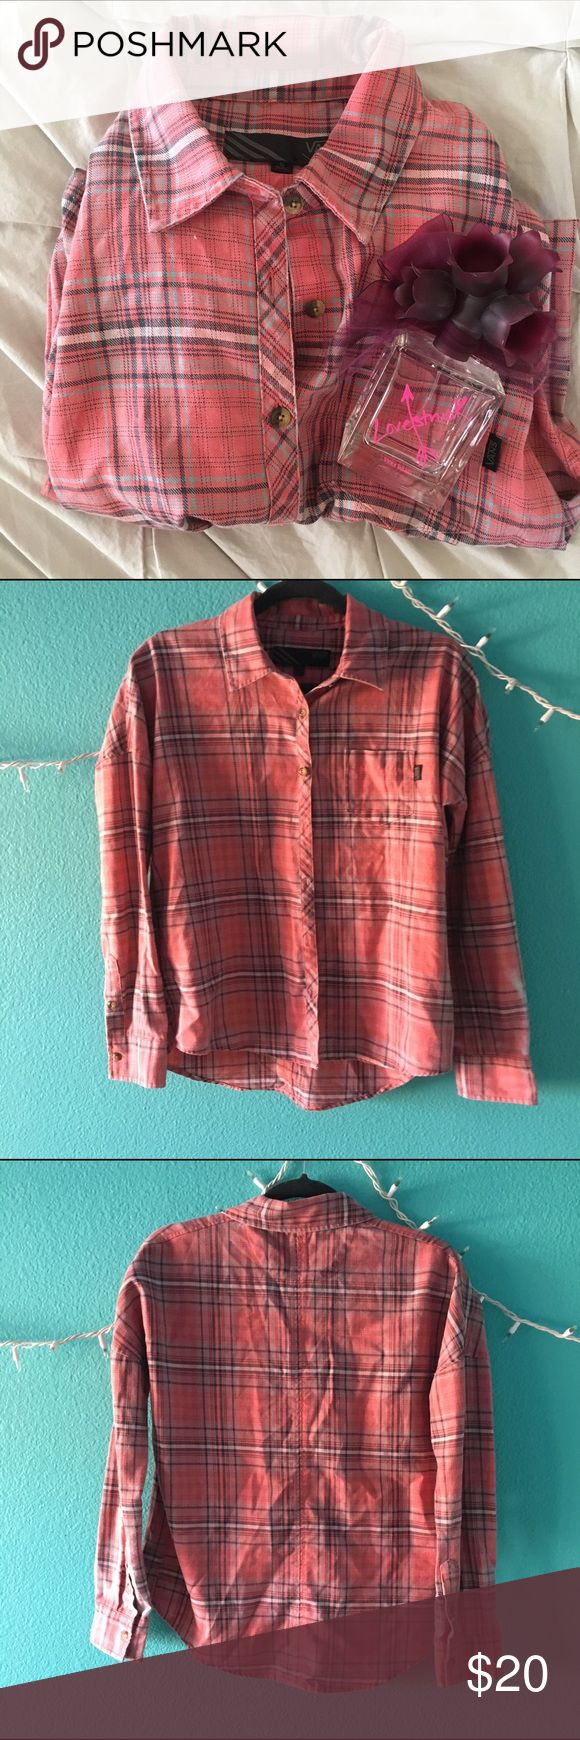 Fitted Flannel Peachy pink colored, only worn a couple times. In near perfect condition. This flannel is more fitted & structured than your typical soft & stretchy flannel. Use the offer button! *Check out the rest of my closet & bundle for a discount! Vans Tops Button Down Shirts